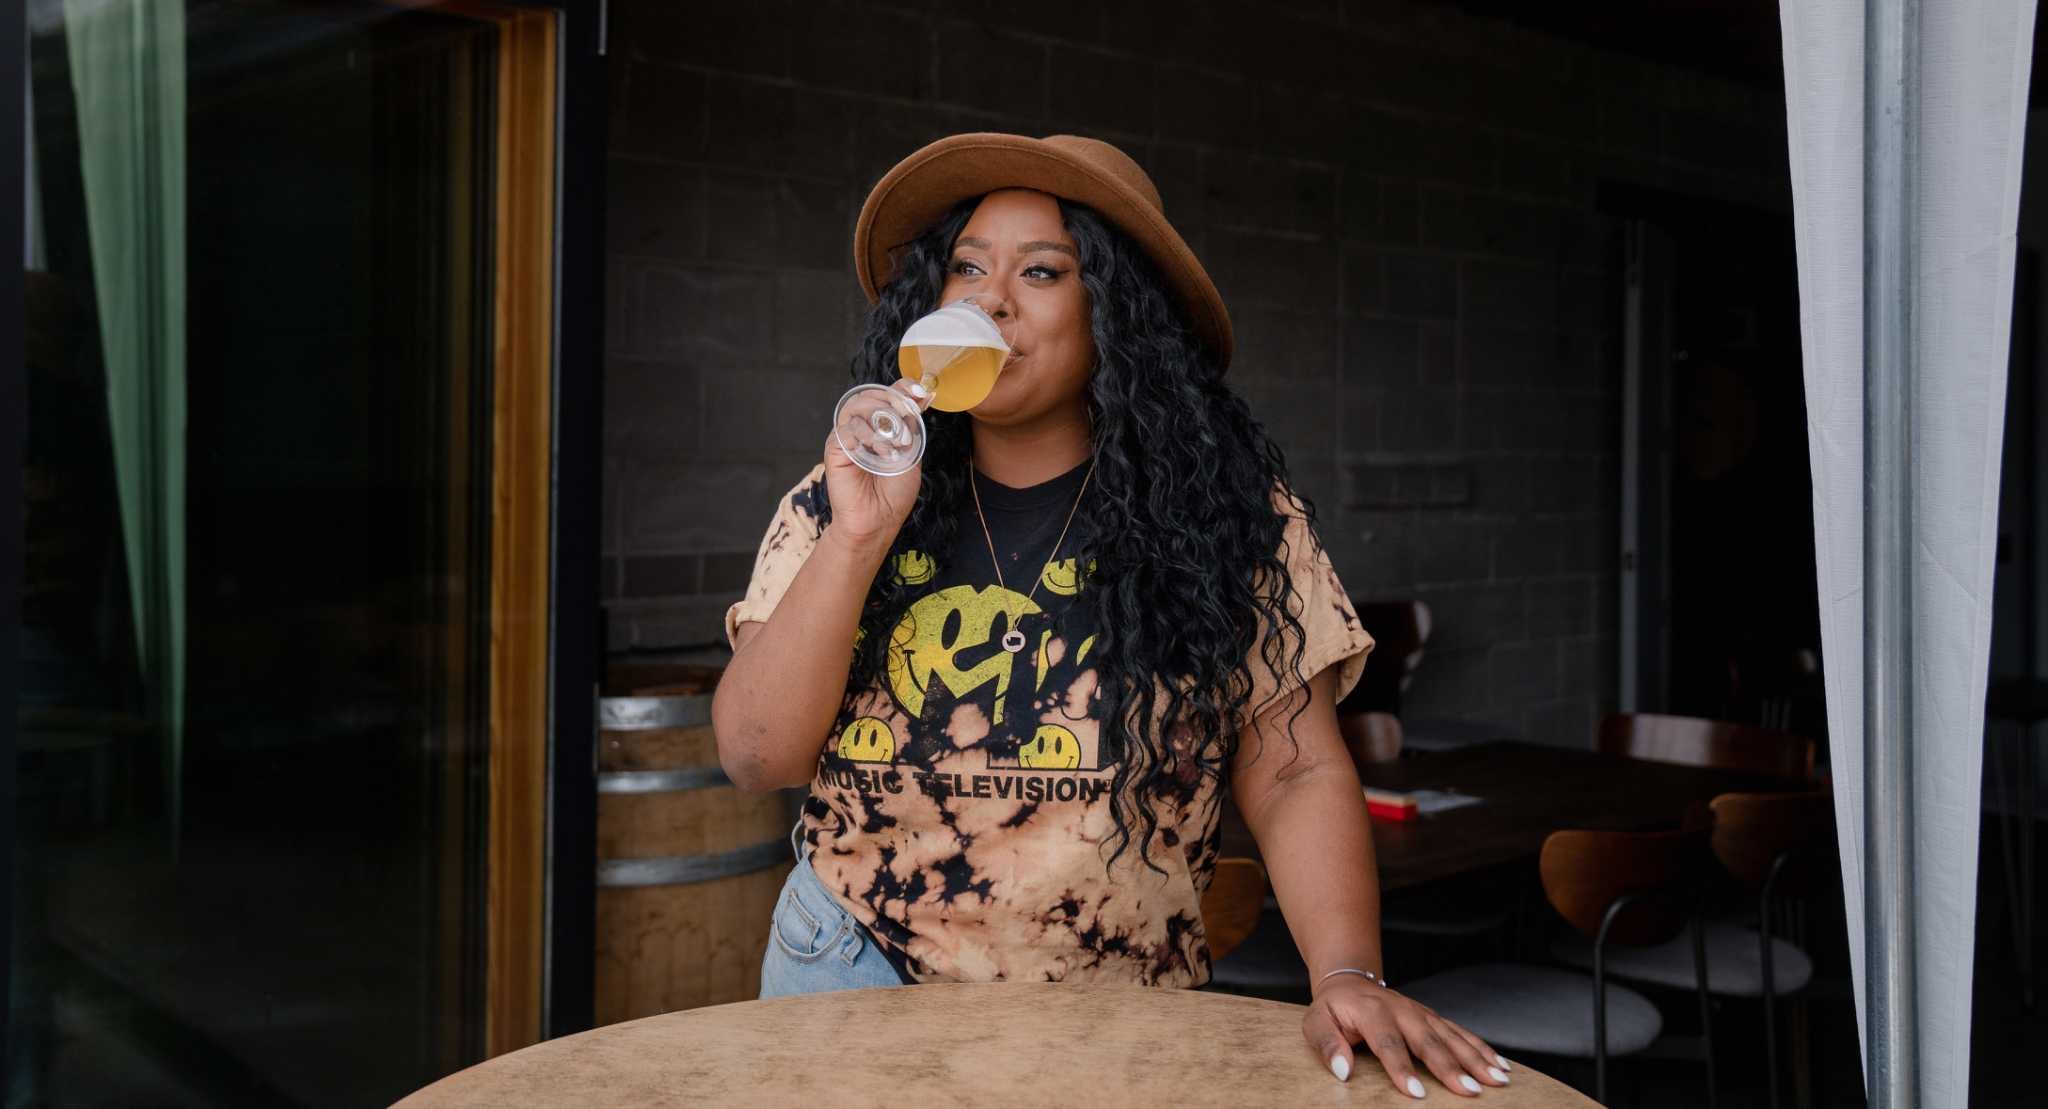 Women in the craft beer industry say they're treated like they don't belong. Now, they're speaking up.